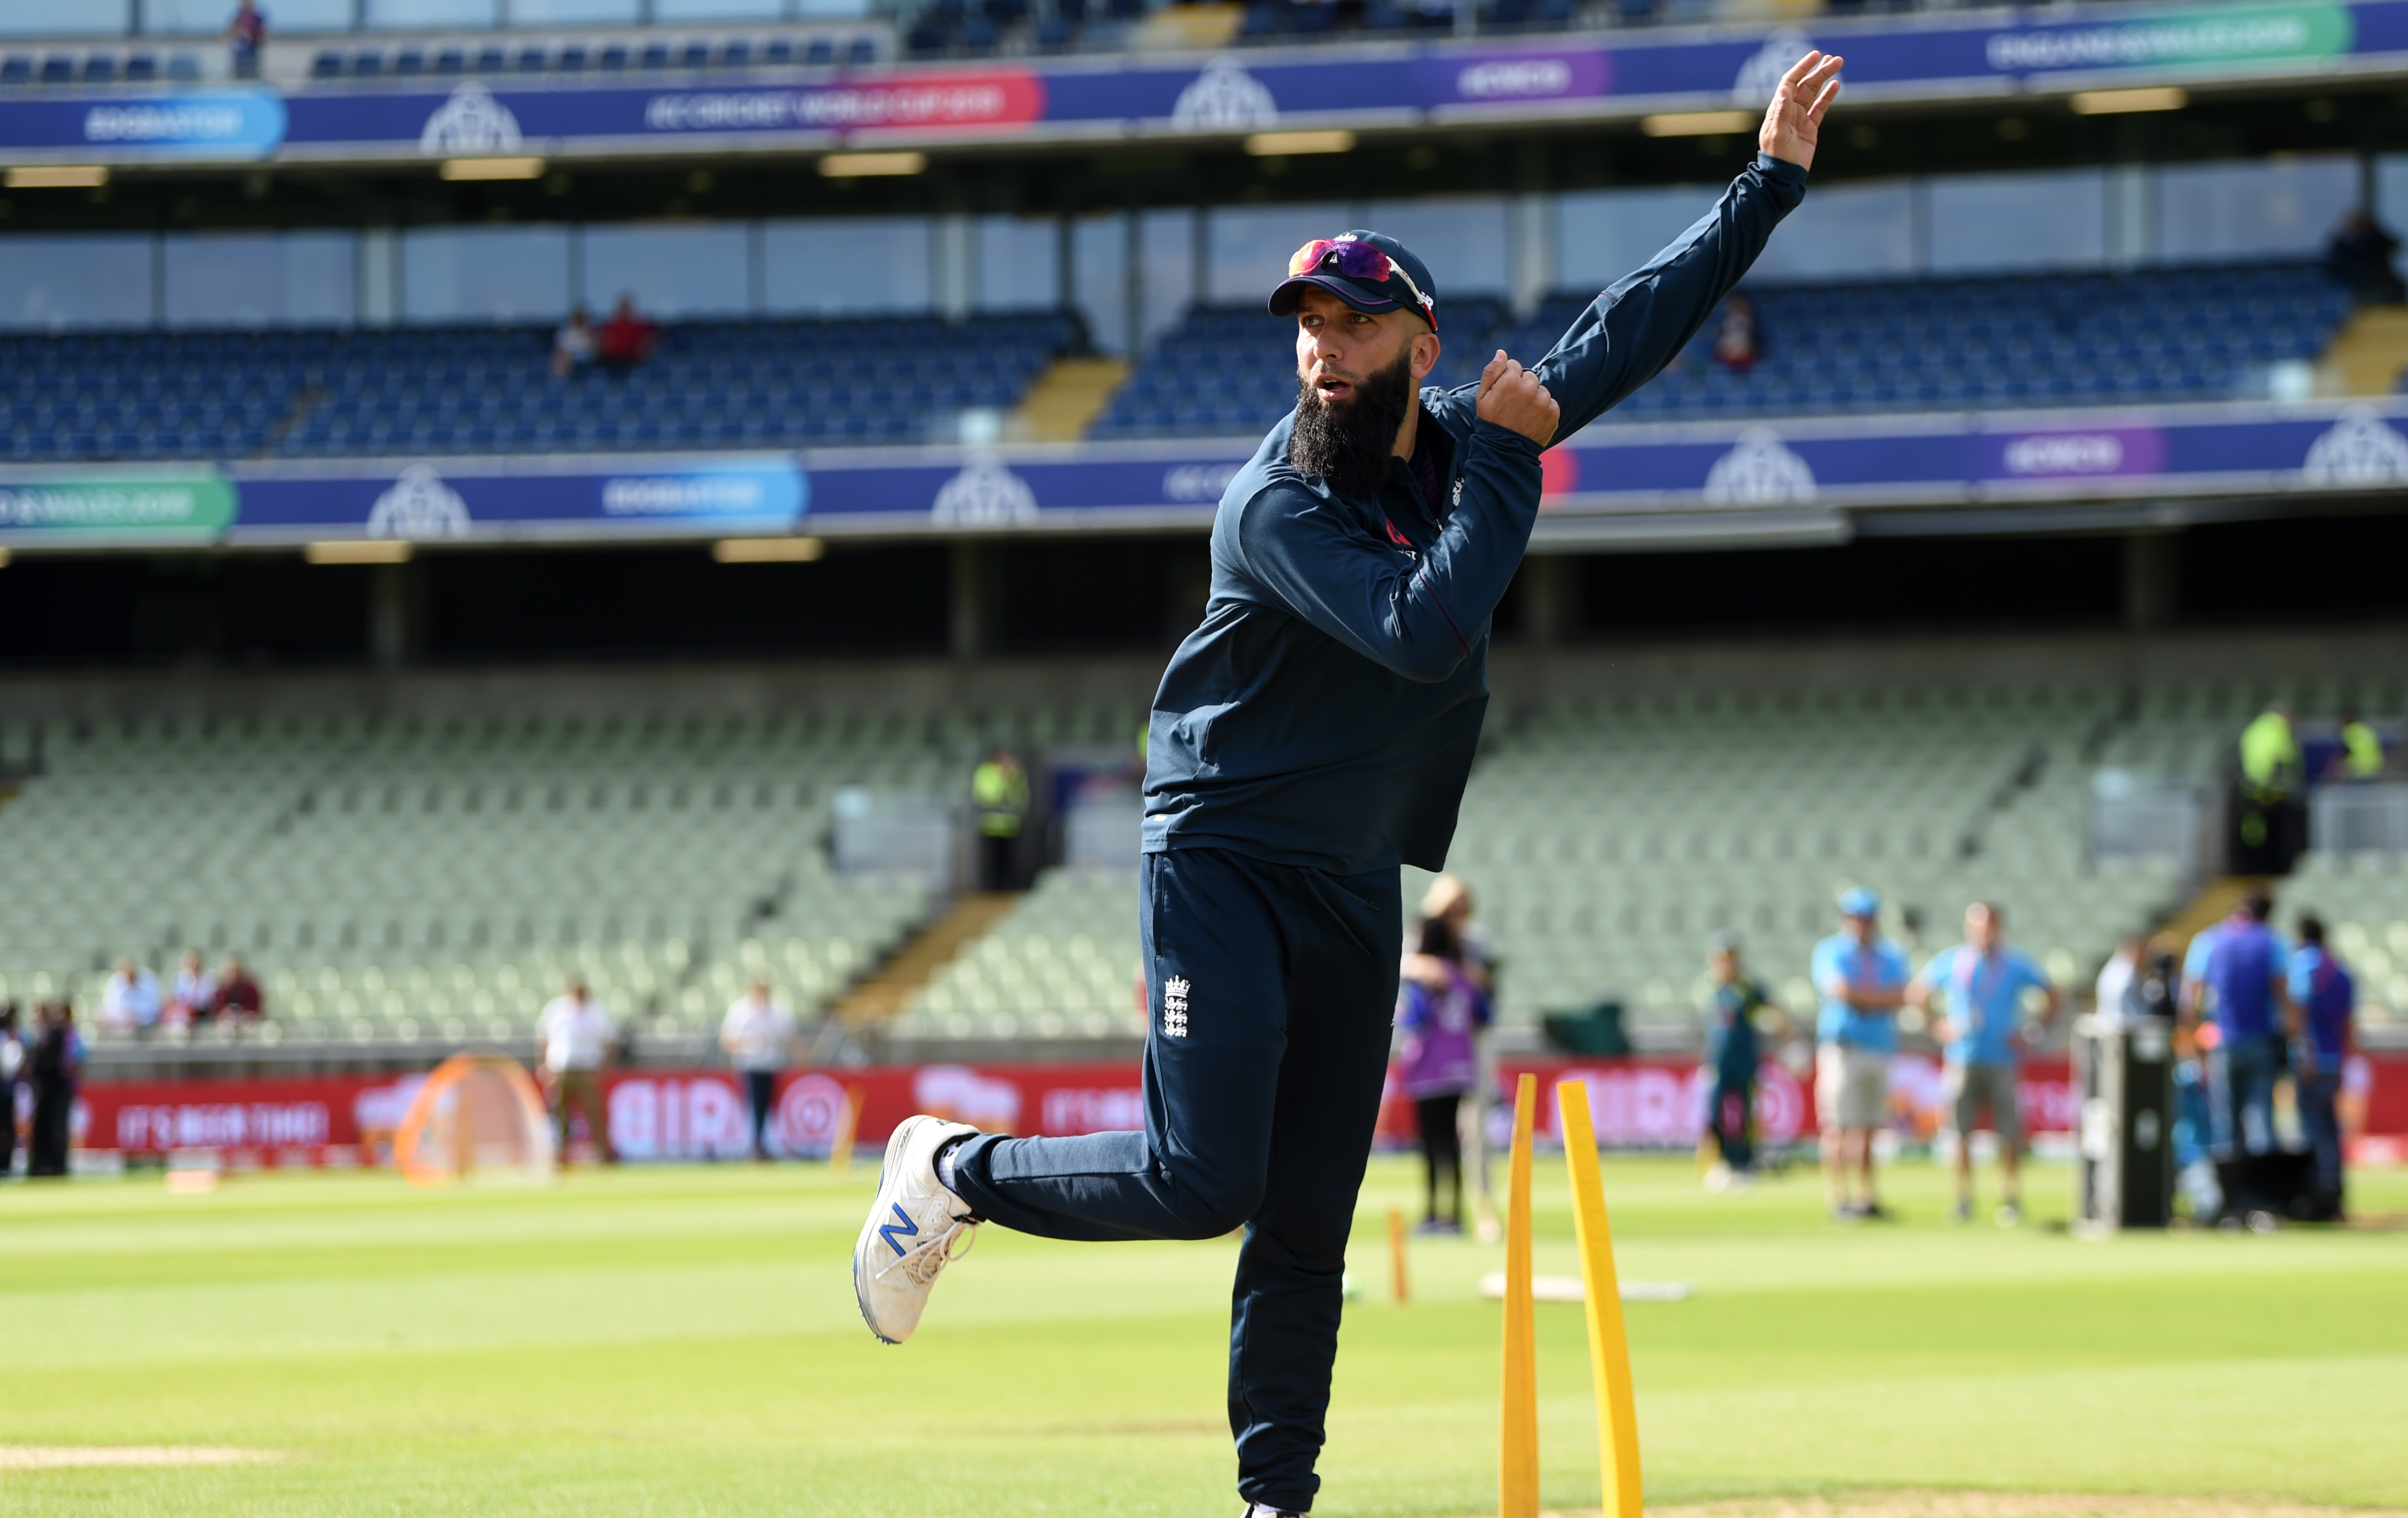 England news Moeen Ali's recent performances form divided opinions over his selection 09 Aug 19 - International Cricket Council thumbnail